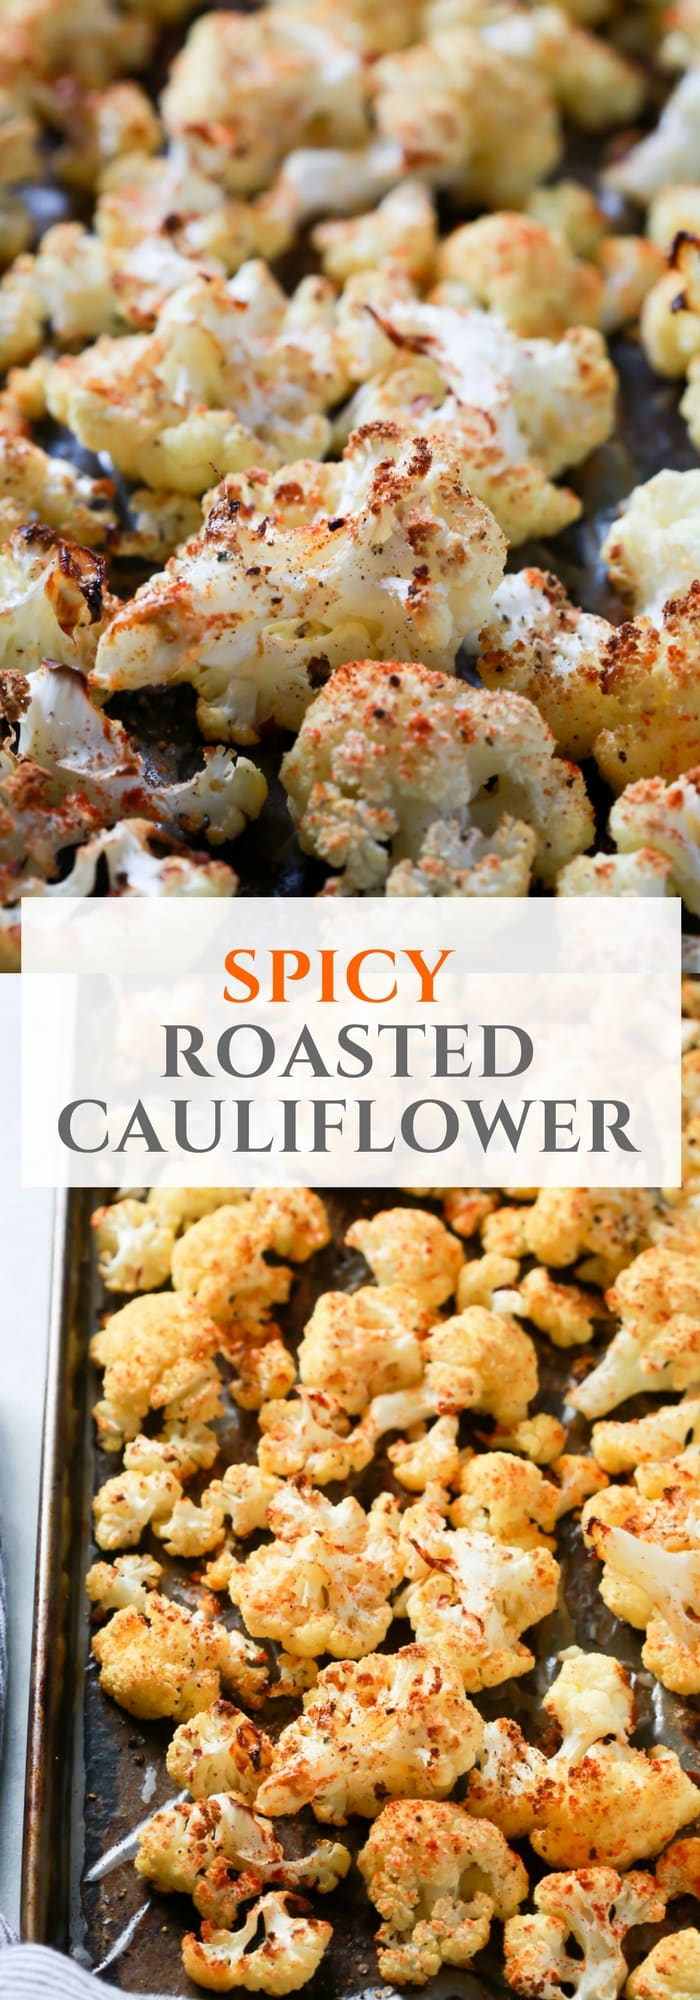 Easy, quick and delicious Spicy Roasted Cauliflower Recipe for you to try today! It's made with also gluten-free, low-carb and paleo friendly. Enjoy!